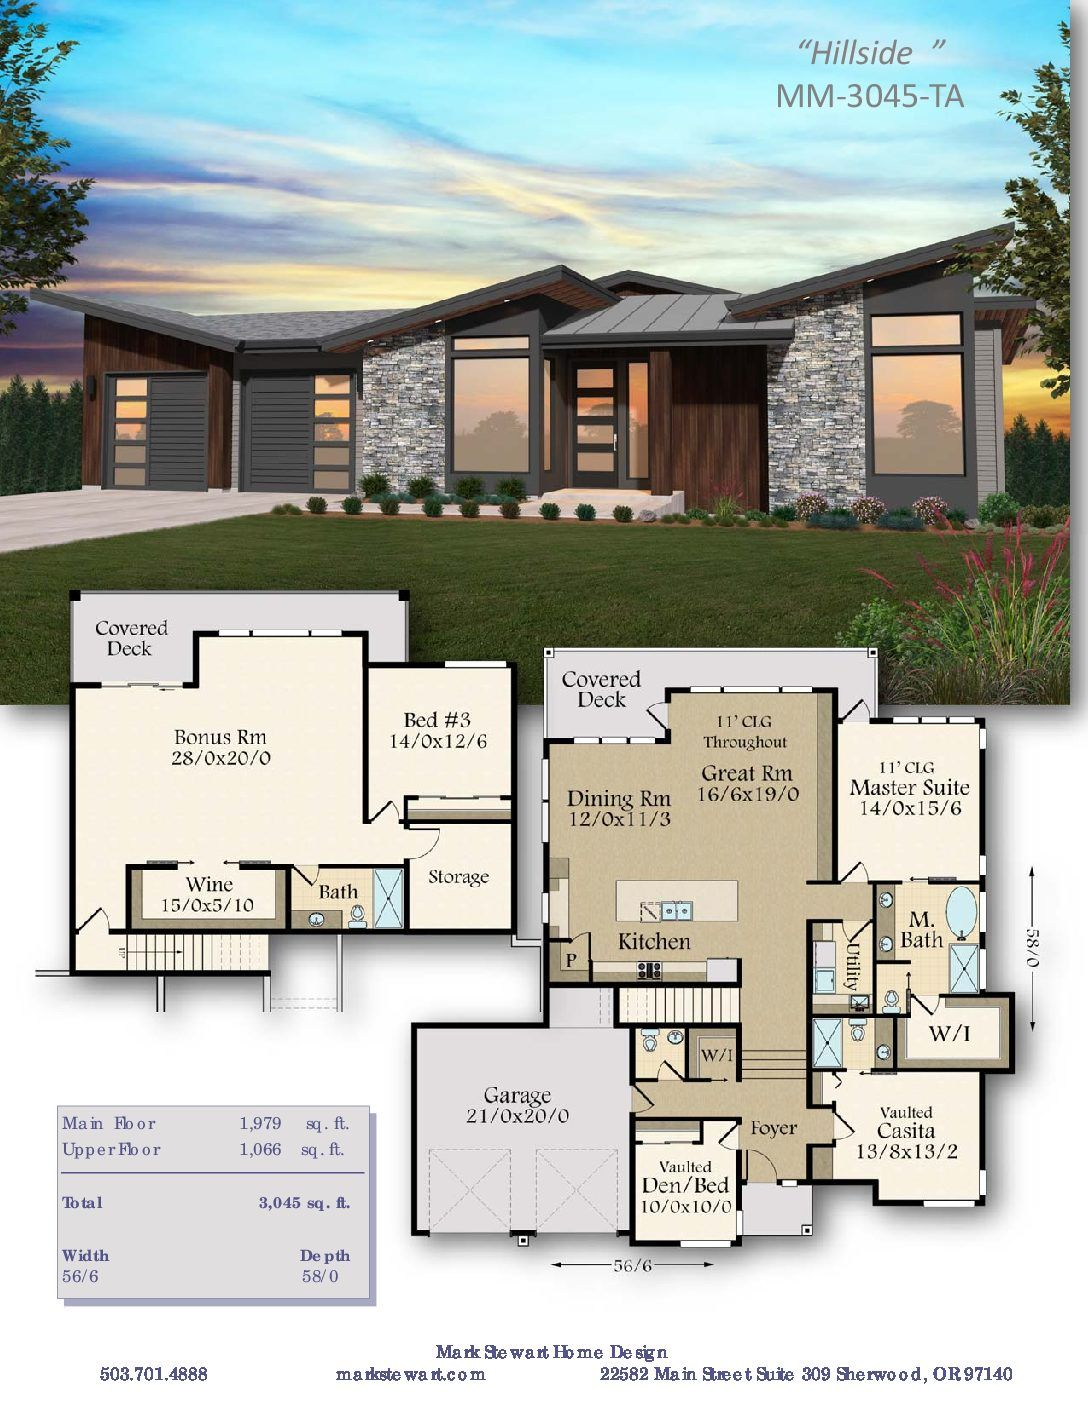 Hillside House Plan | Basement house plans, House plans ...